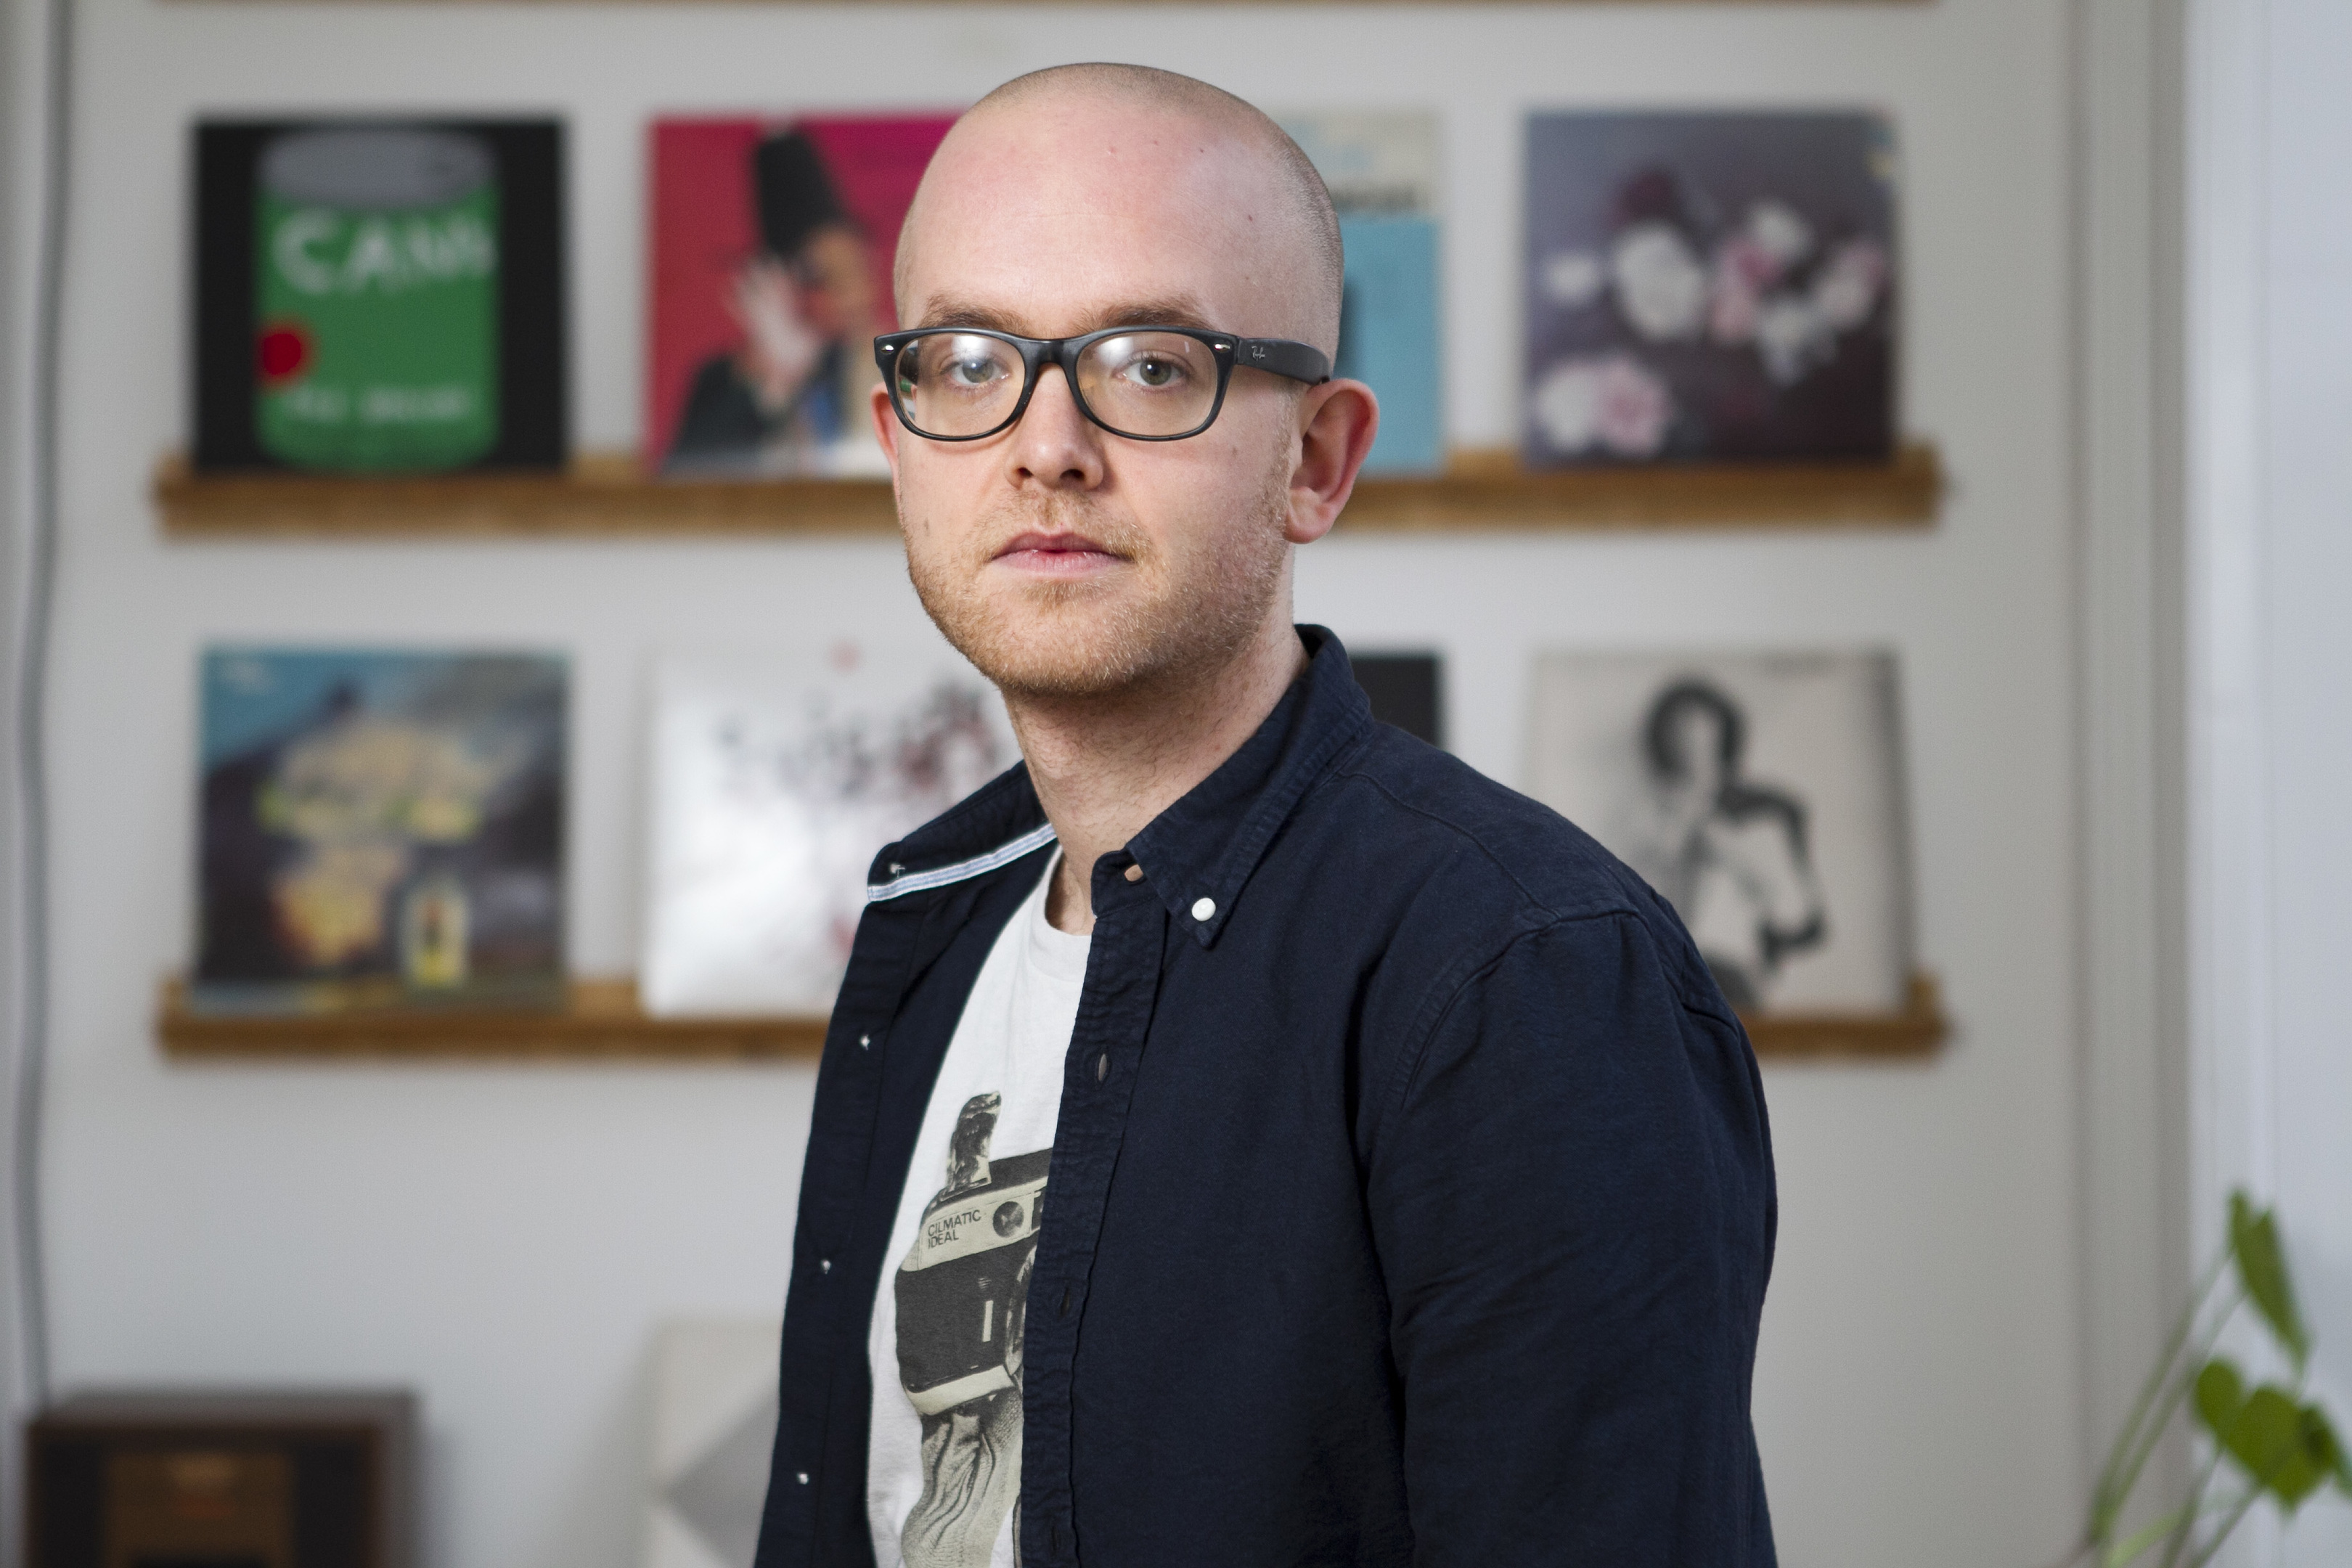 Mark Oliver, who is unhappy with the current education system (Andrew Cawley / DC Thomson)